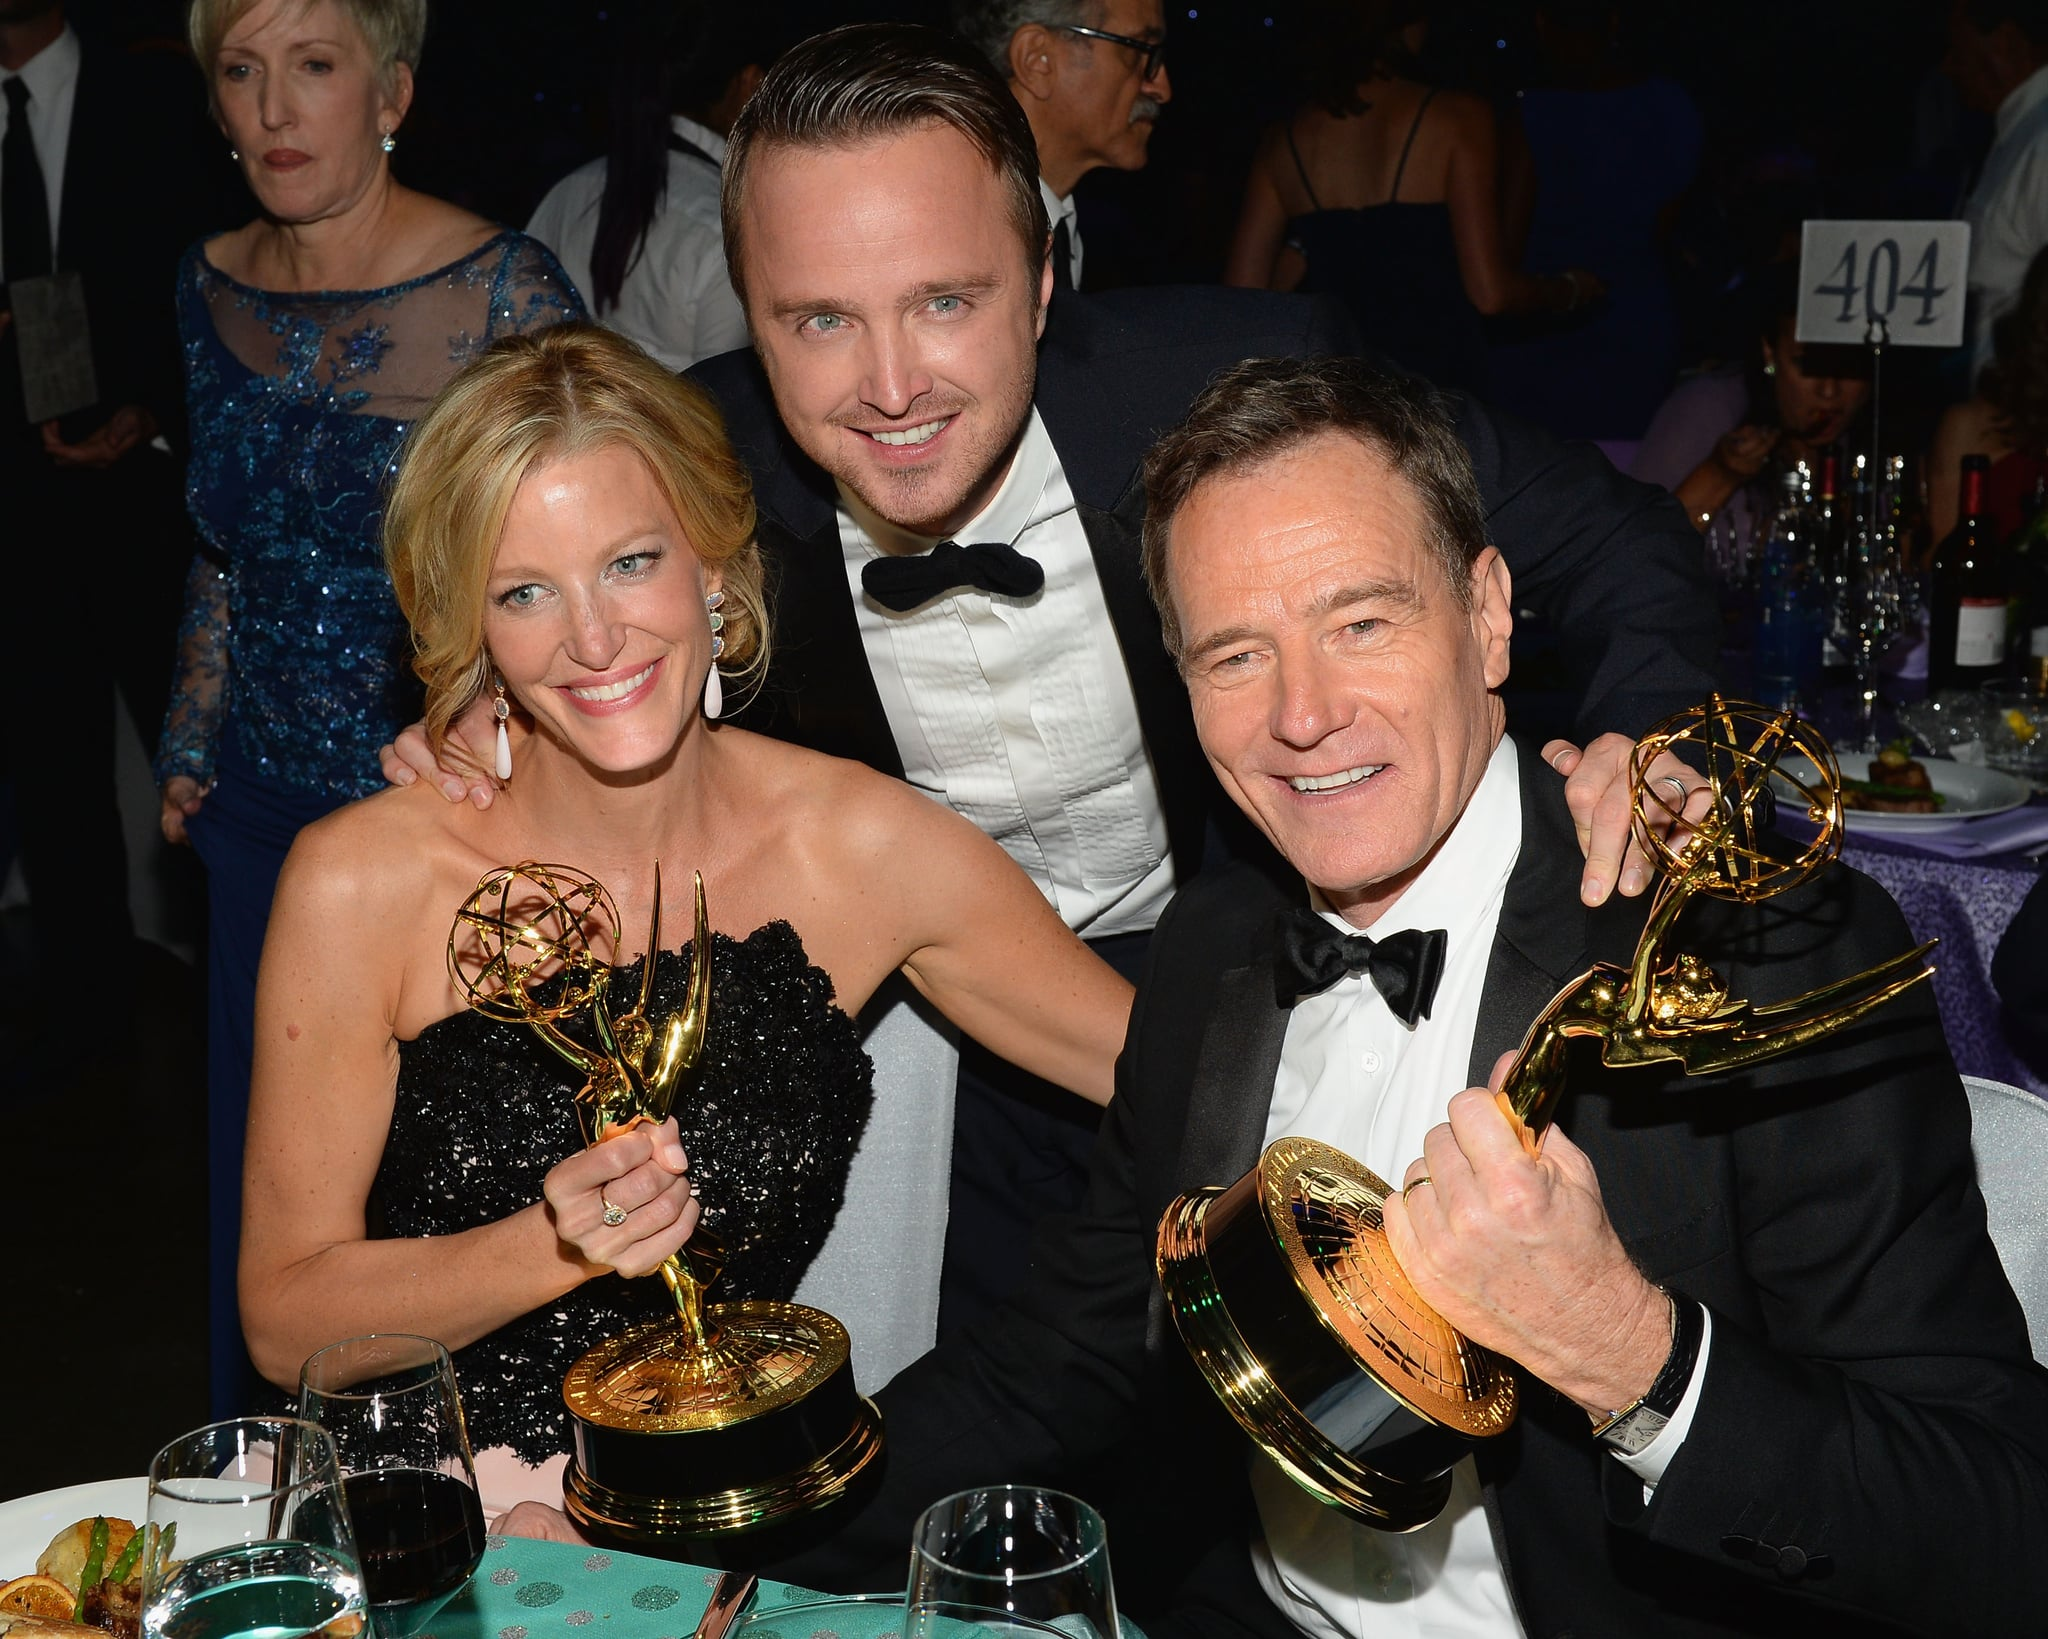 Anna Gunn, Aaron Paul, and Bryan Cranston posed with their awards at the 2013 Emmys Governors Ball.